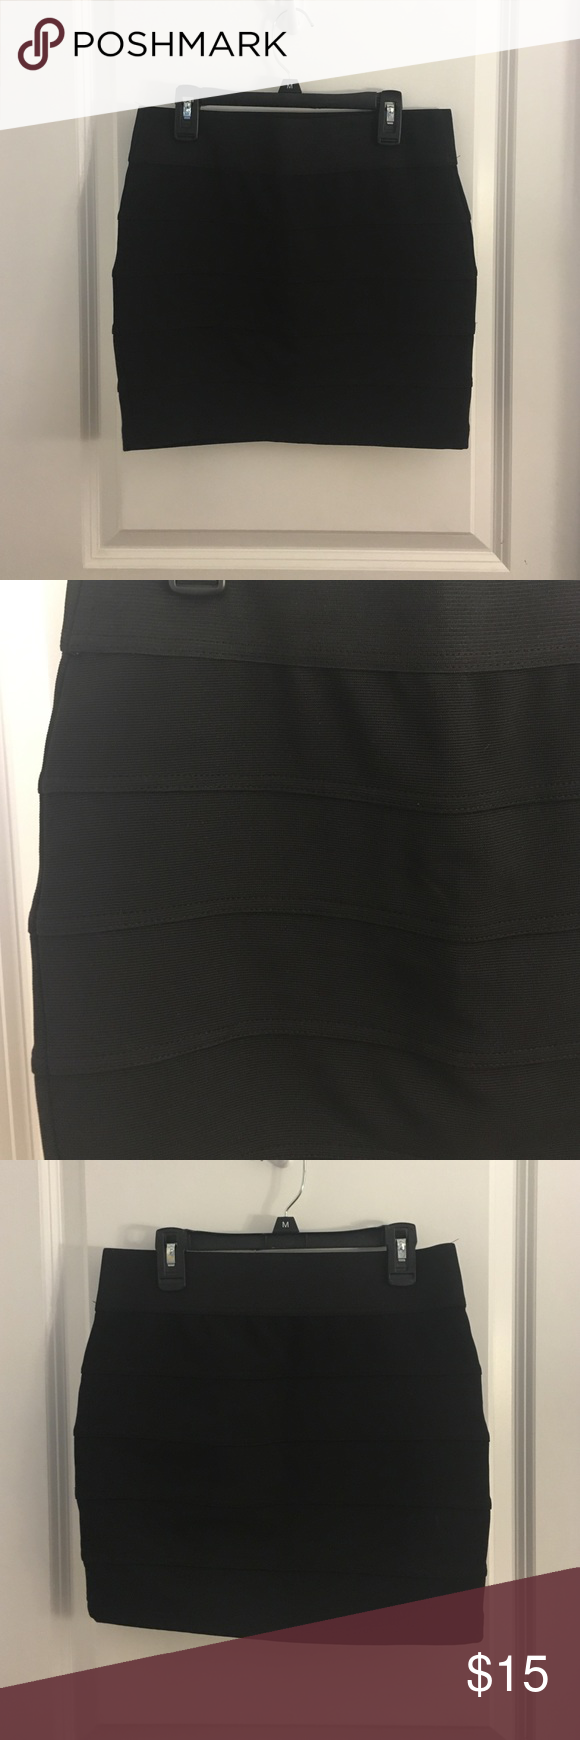 Black Bandage Skirt Black bandage skirt from charlotte russe. Size medium. Never worn. Charlotte Russe Skirts Mini